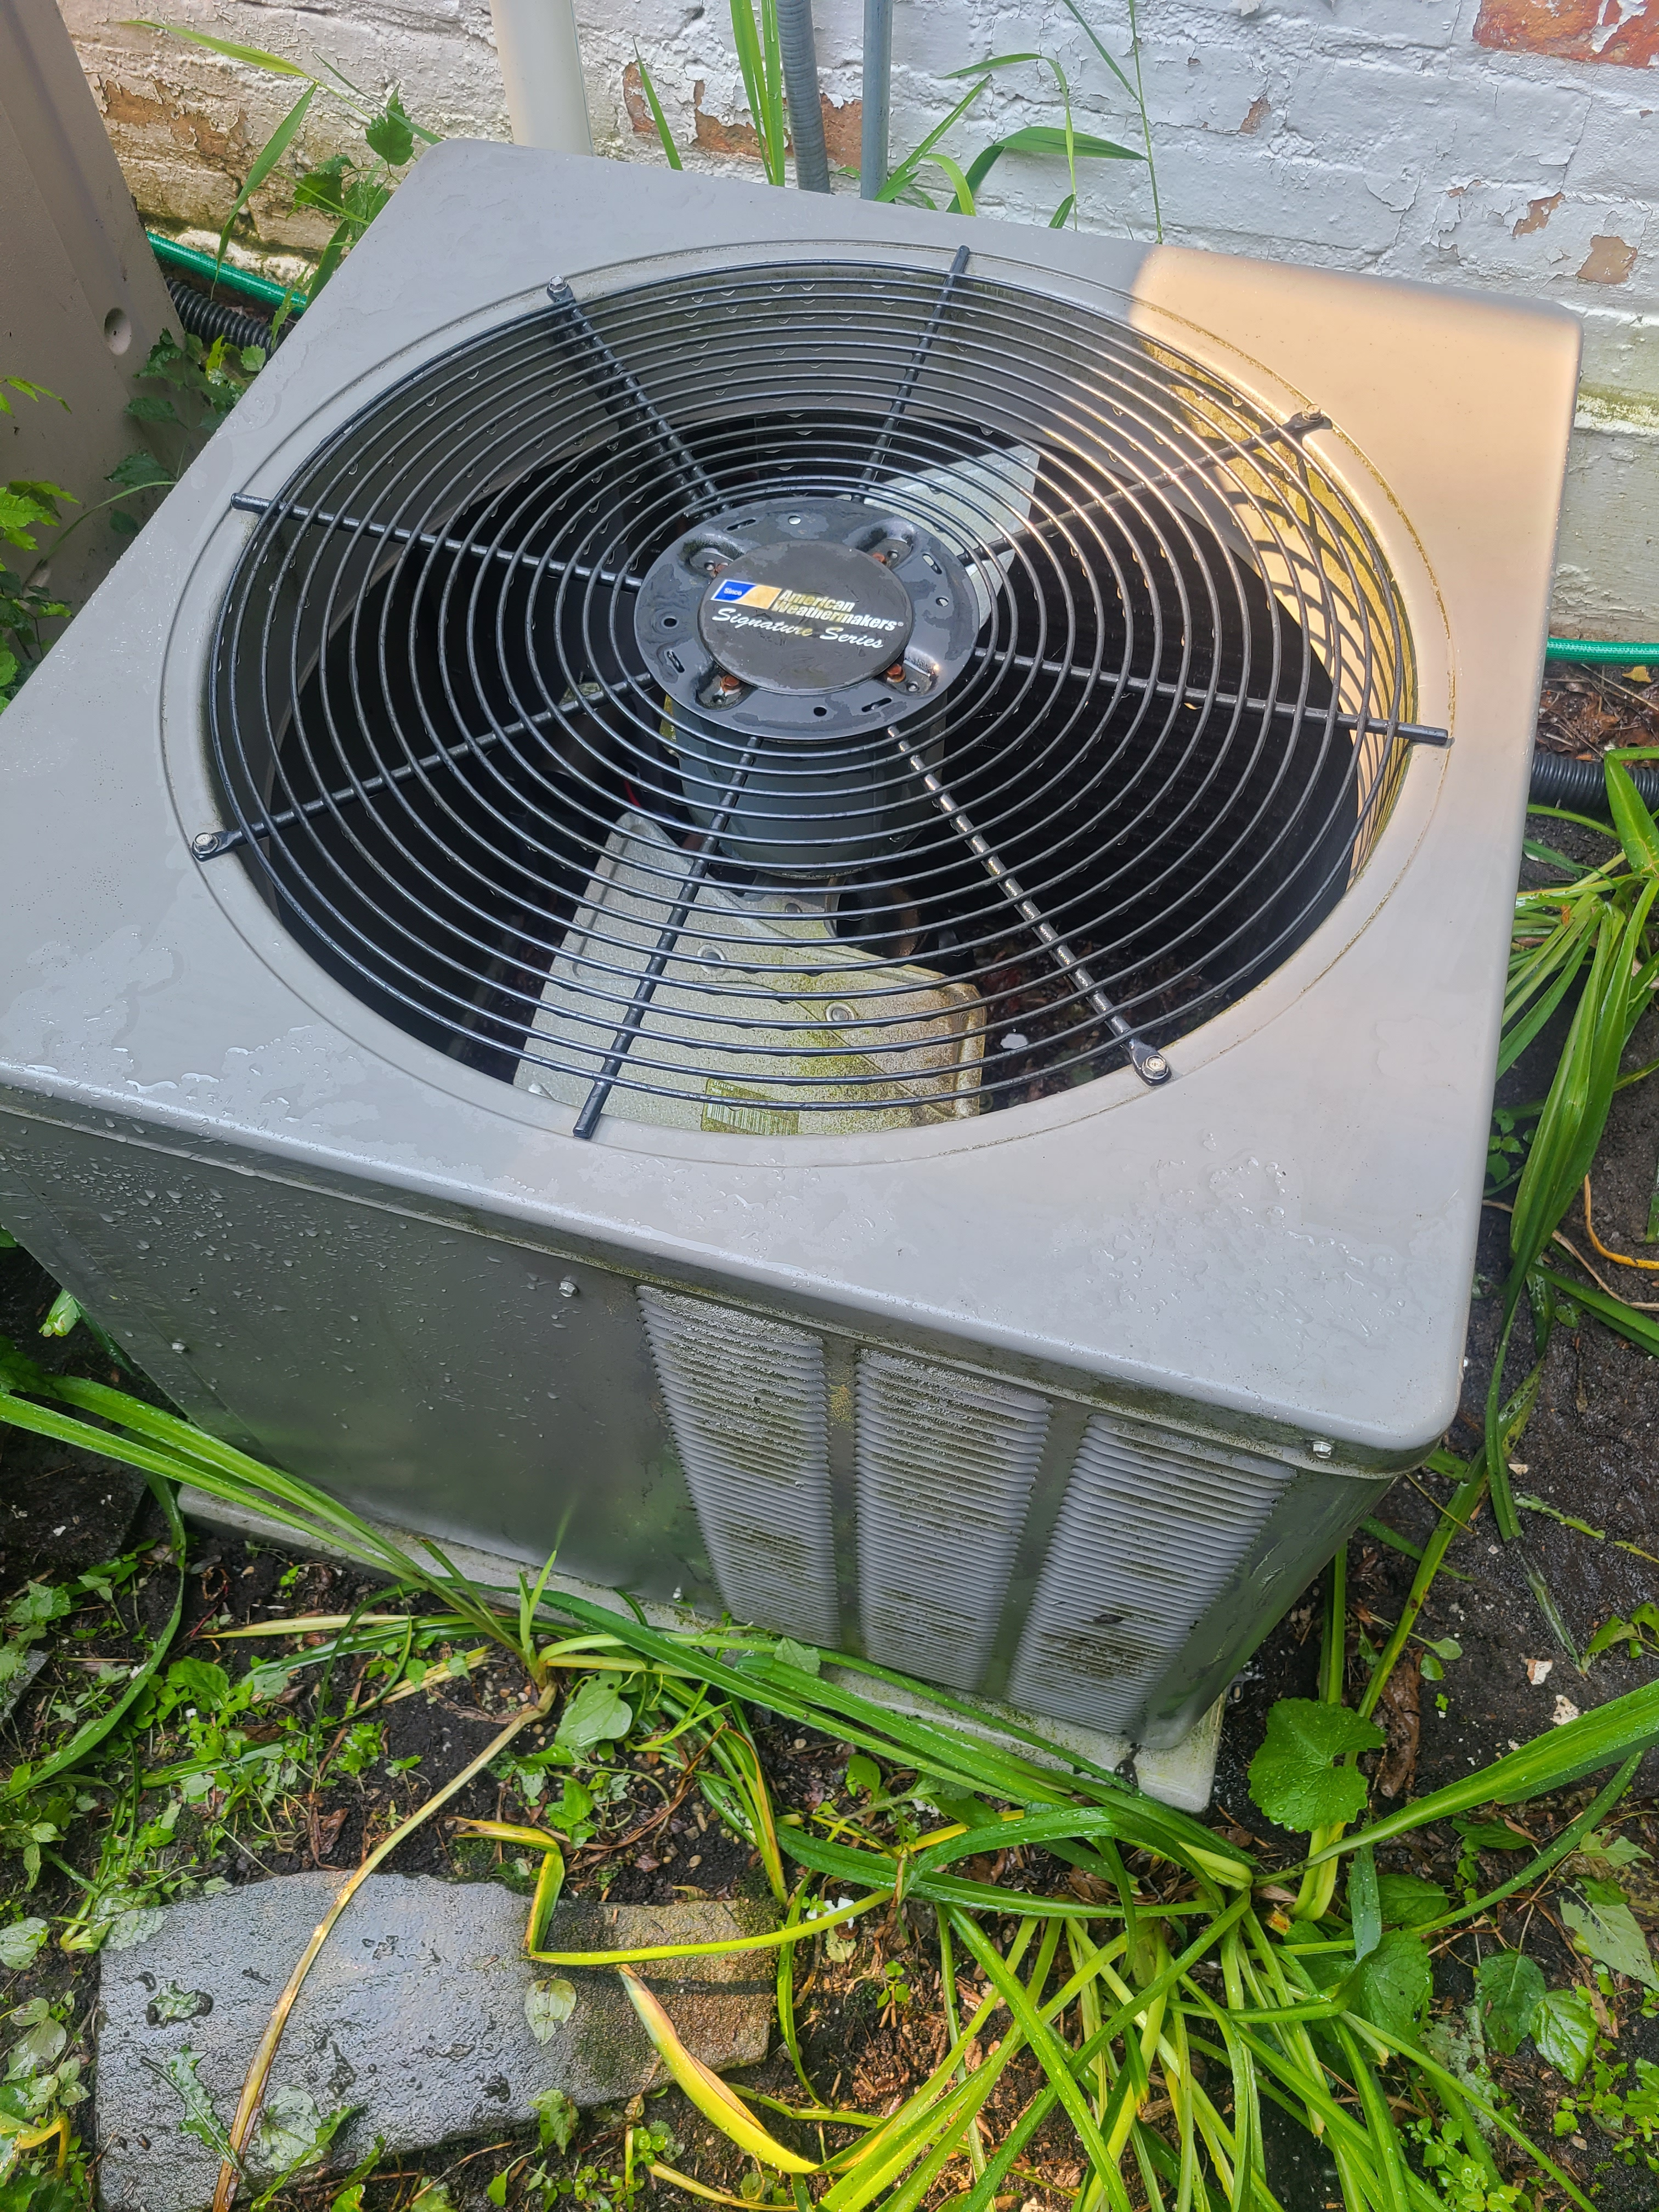 AC not cooling. Found system low on refrigerant. Recharged Ruud air conditioner.